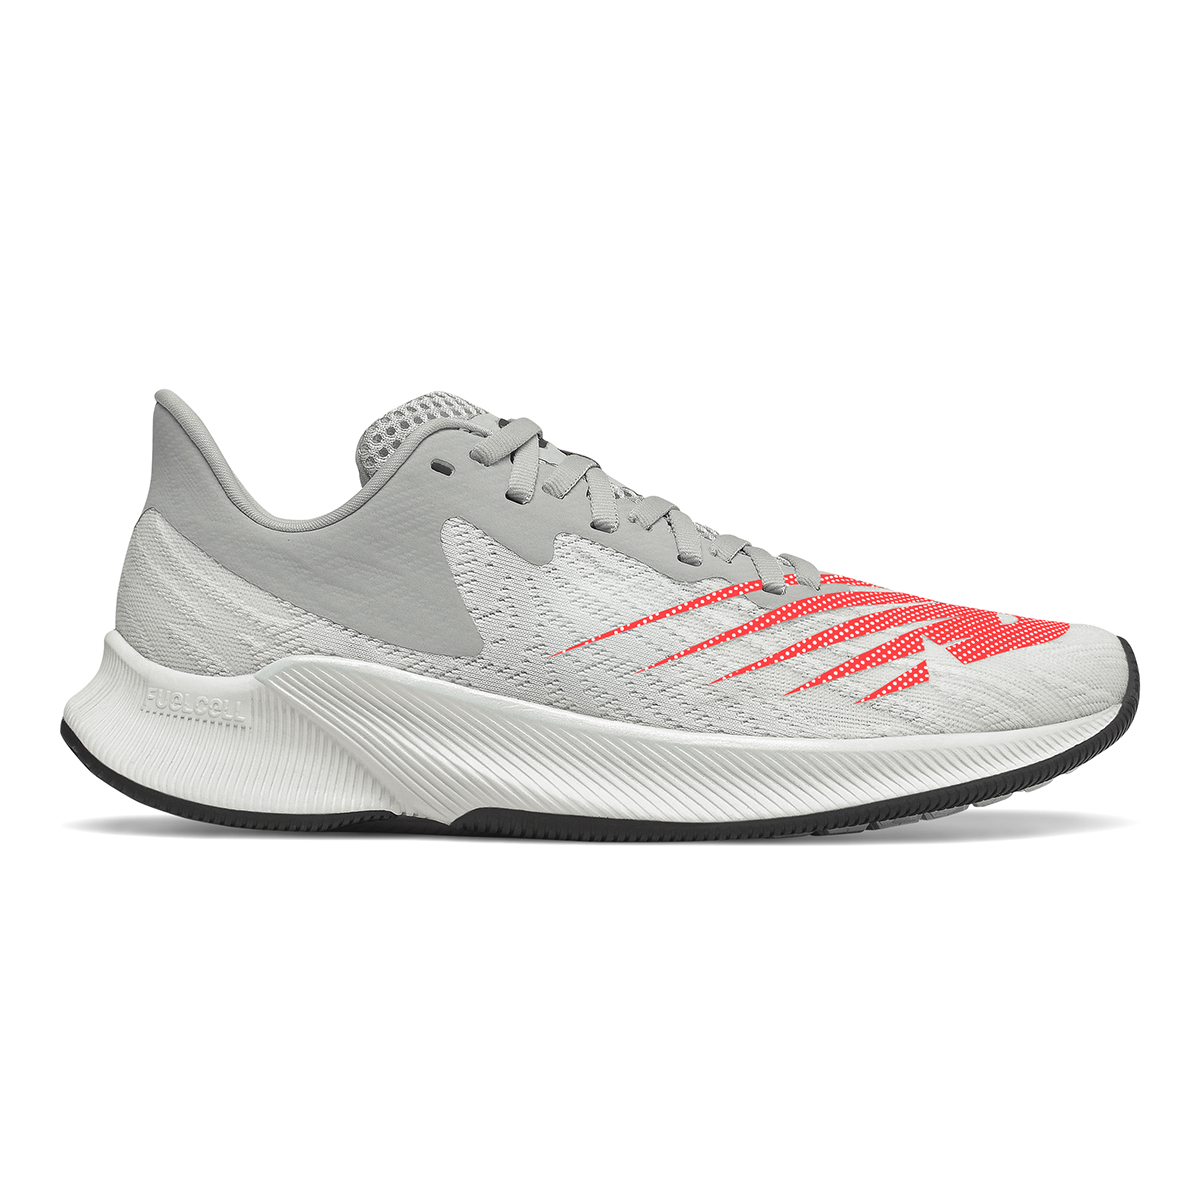 Women's New Balance FuelCell Prism Running Shoe - Color: White - Size: 6 - Width: Regular, White, large, image 1